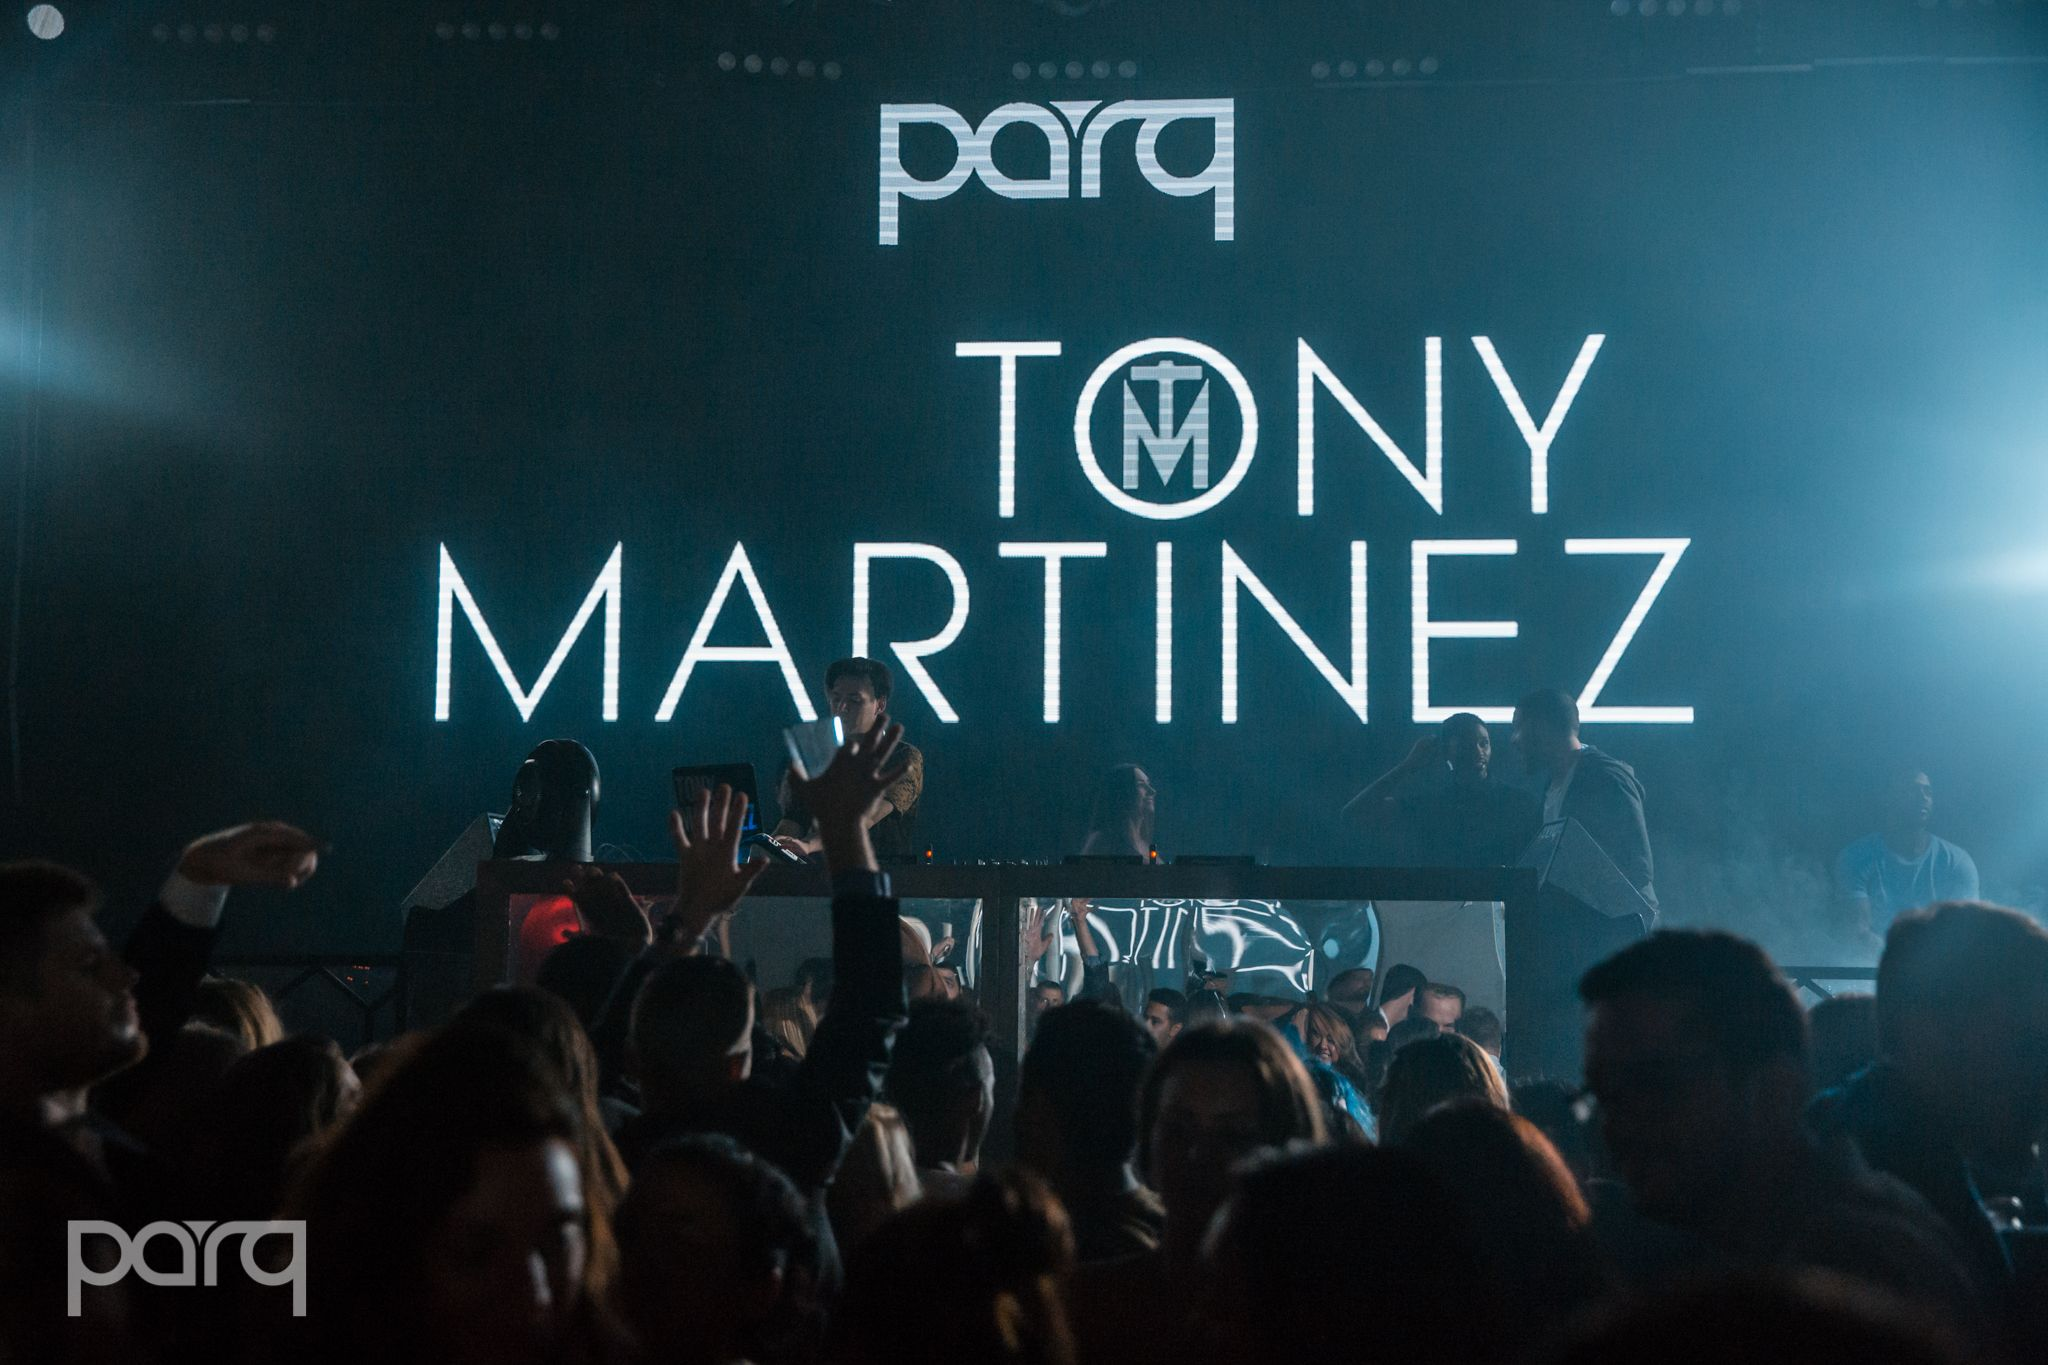 09.14.18 Parq - Tony Martinez-1.jpg